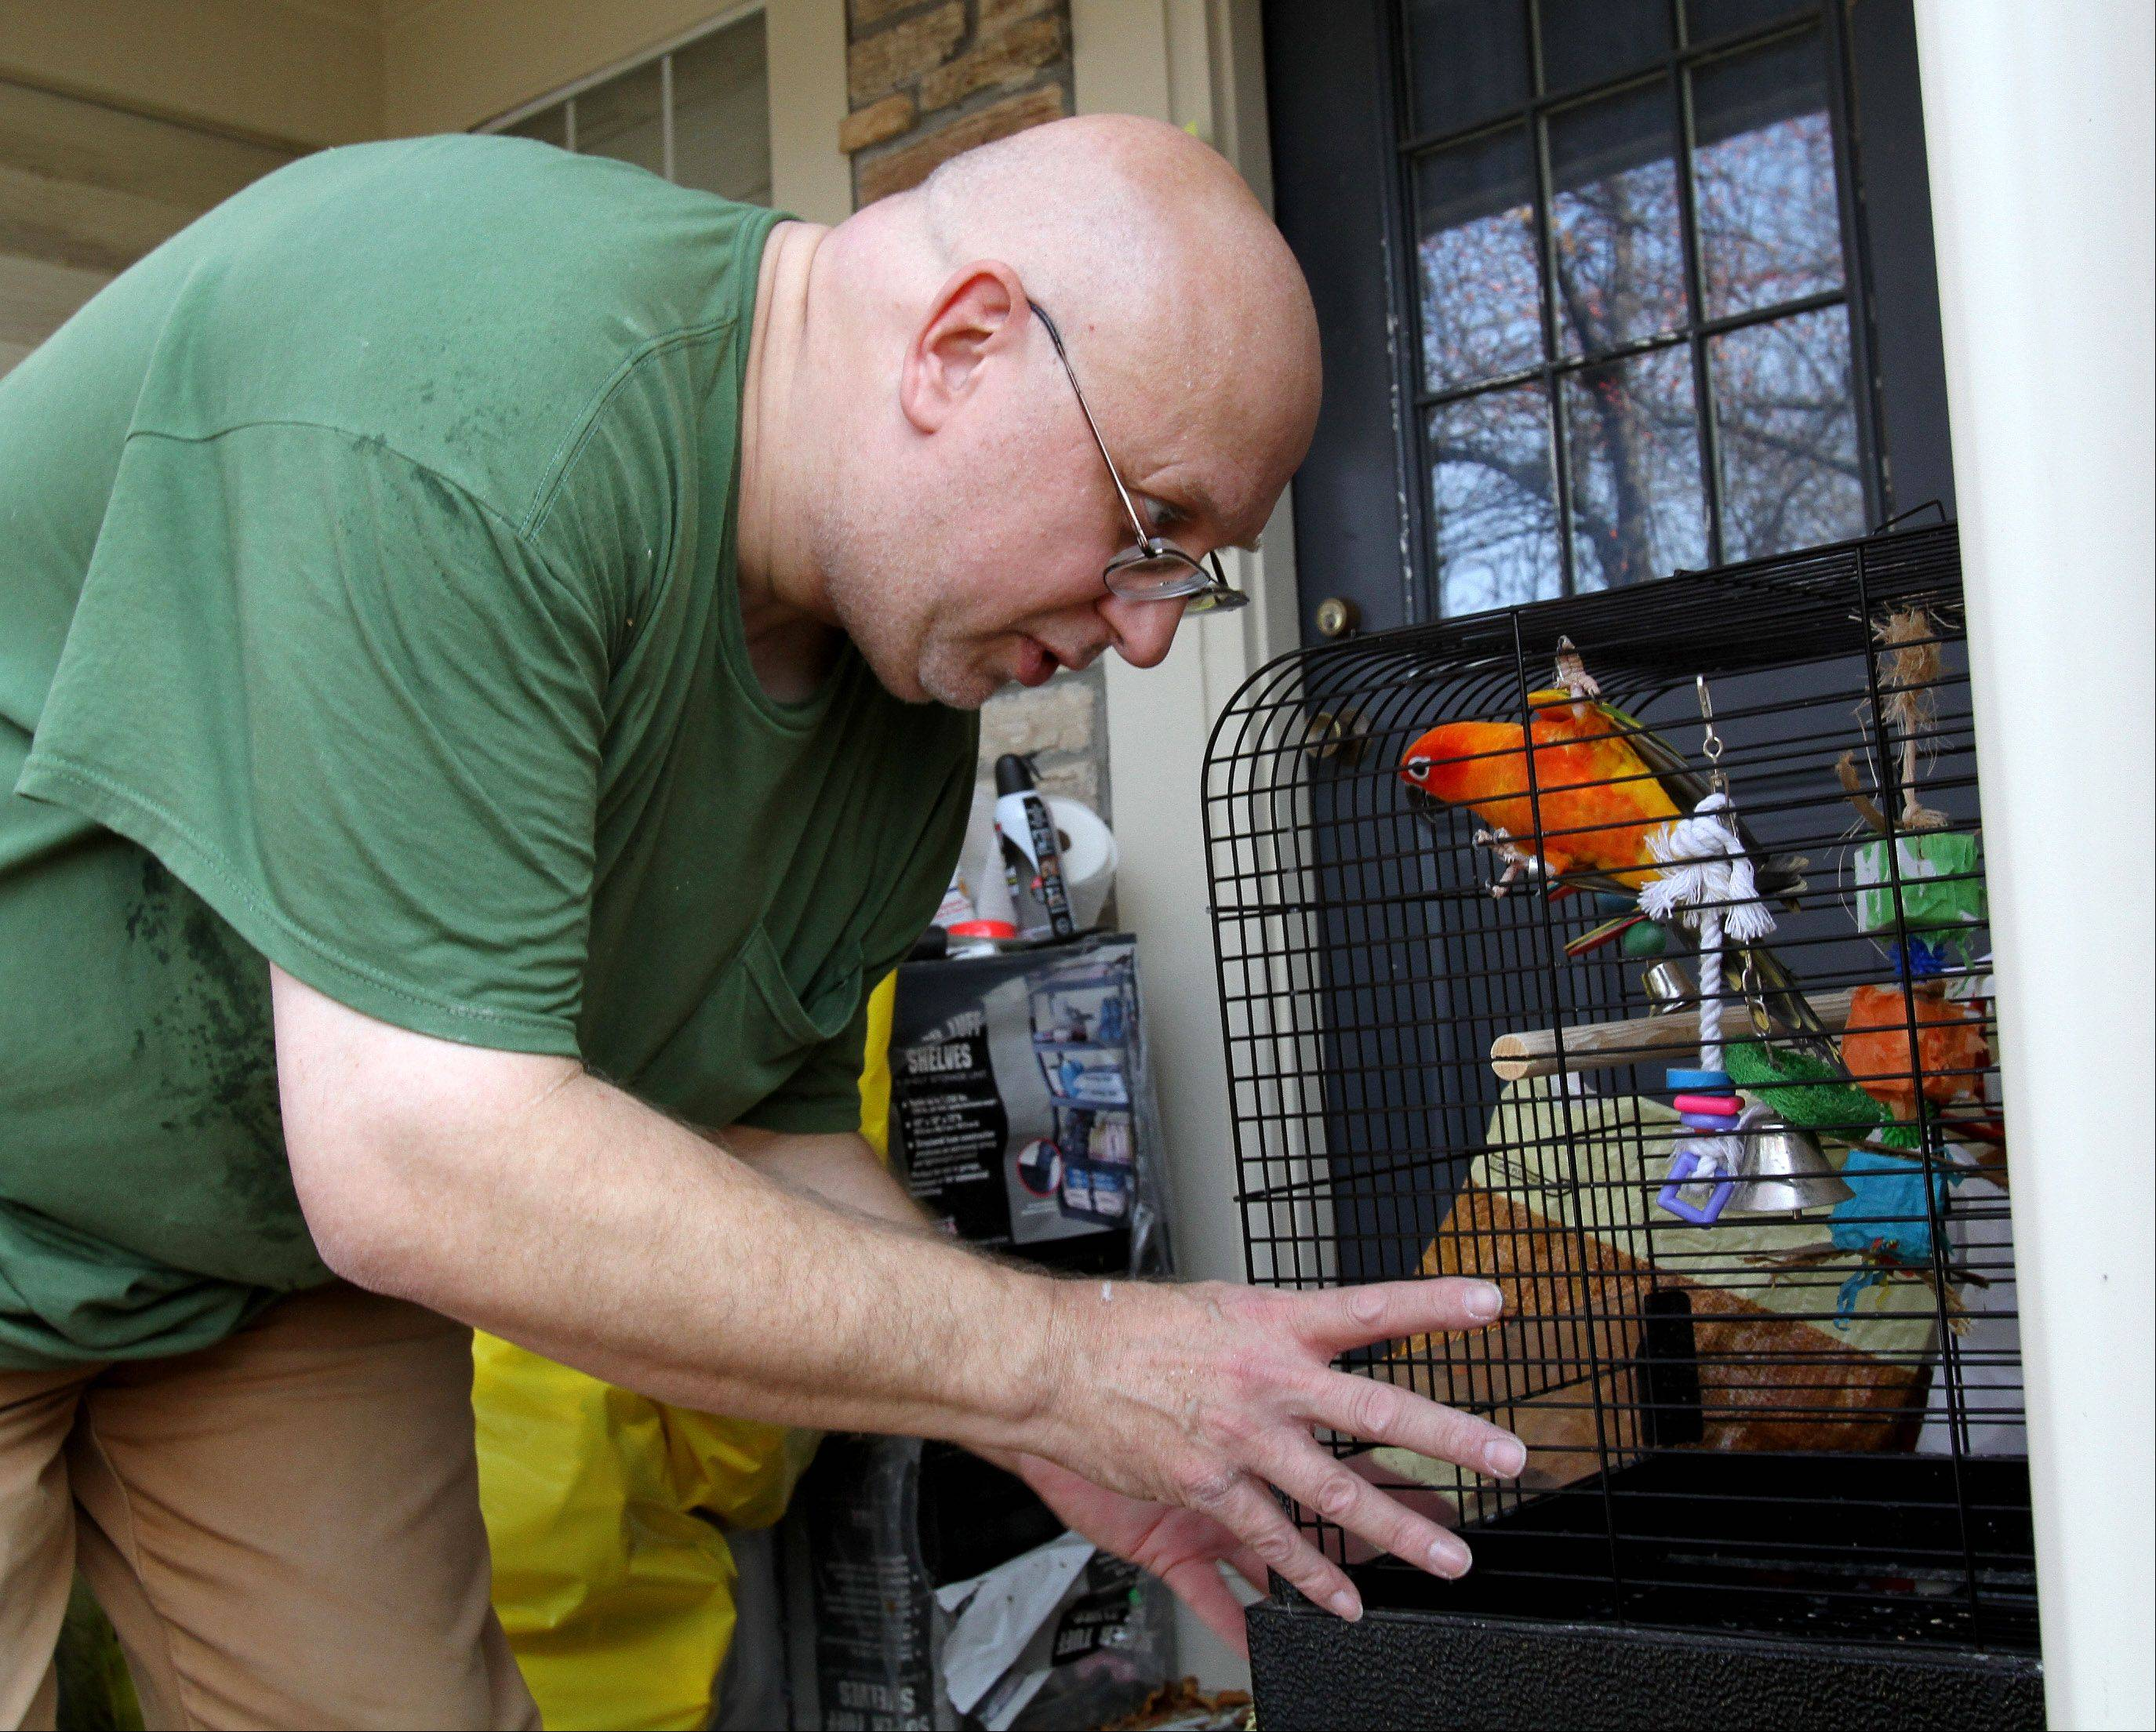 Bev Horne/bhorne@dailyherald.com ¬ Dave Skeberdis outside his Aurora townhome with one of his birds, a Sun Conure named Sweetheart.